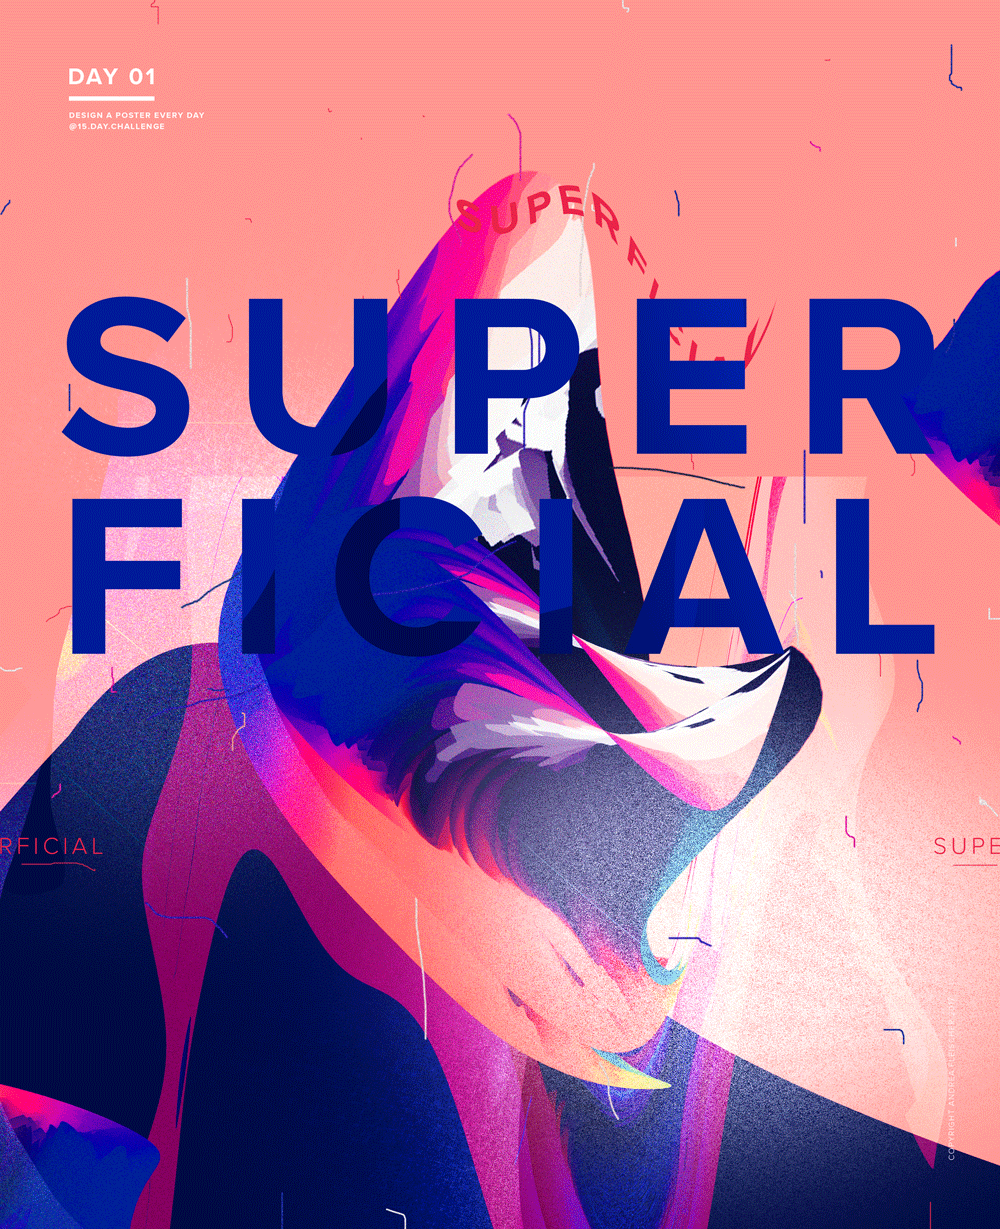 Superficial - image 2 - student project